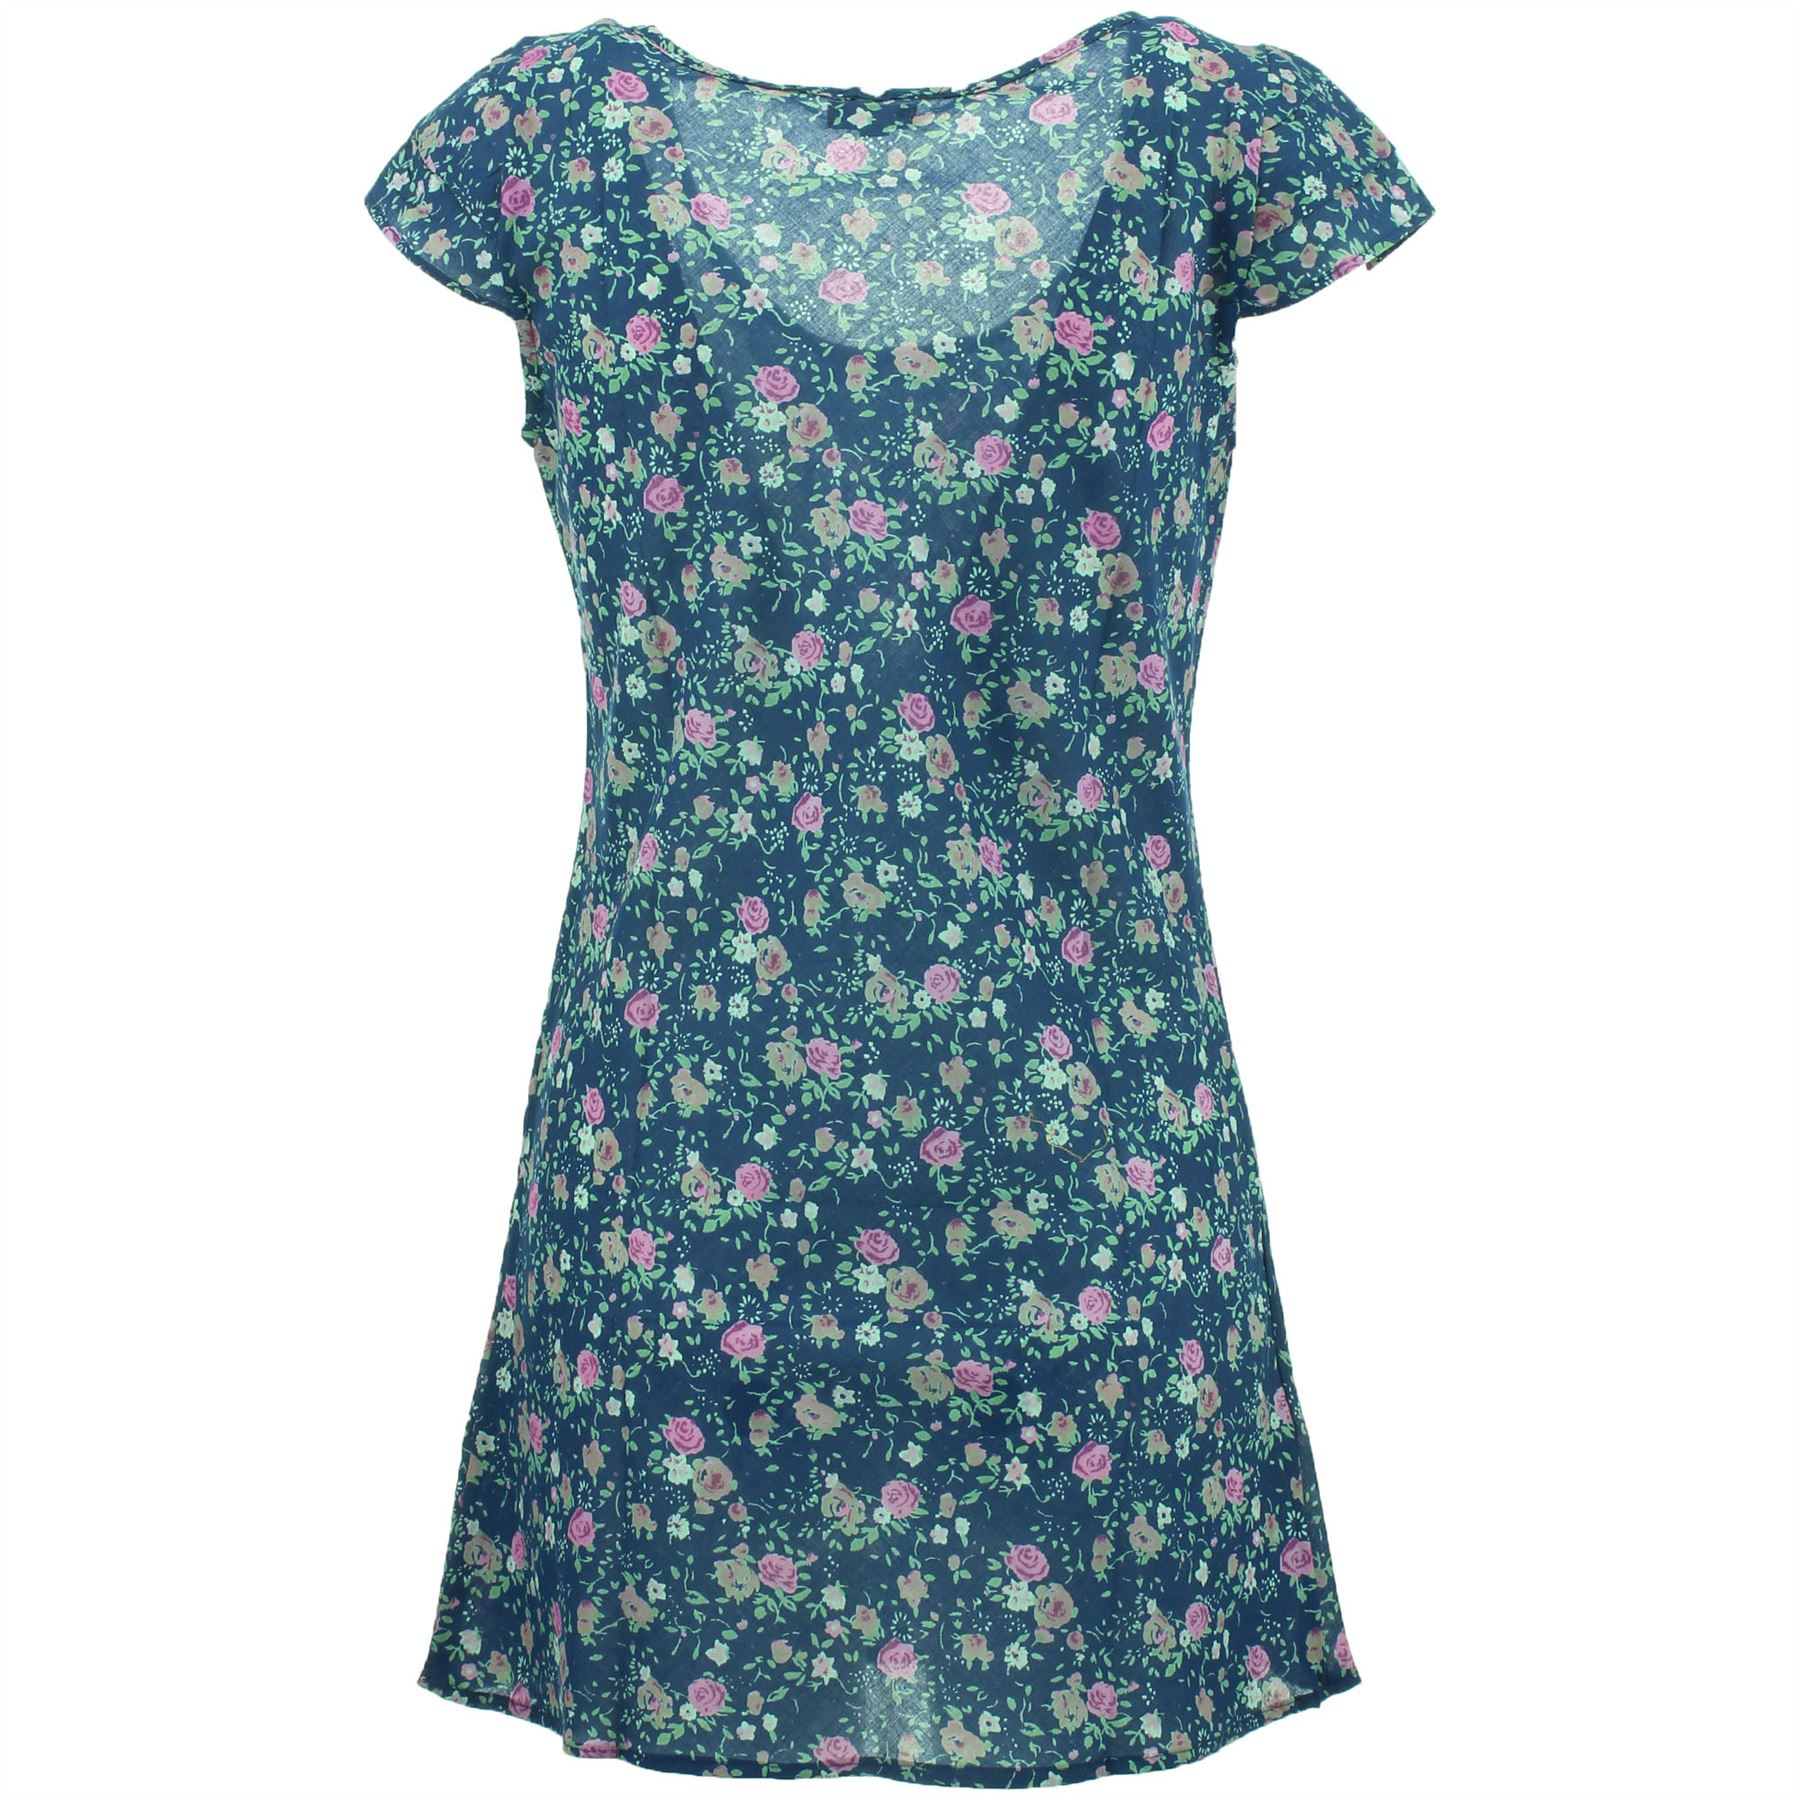 TUNIC TOP FLORAL PRINT BEACH COVER UP DRESS FESTIVAL SUMMER by Gabrielle Parker